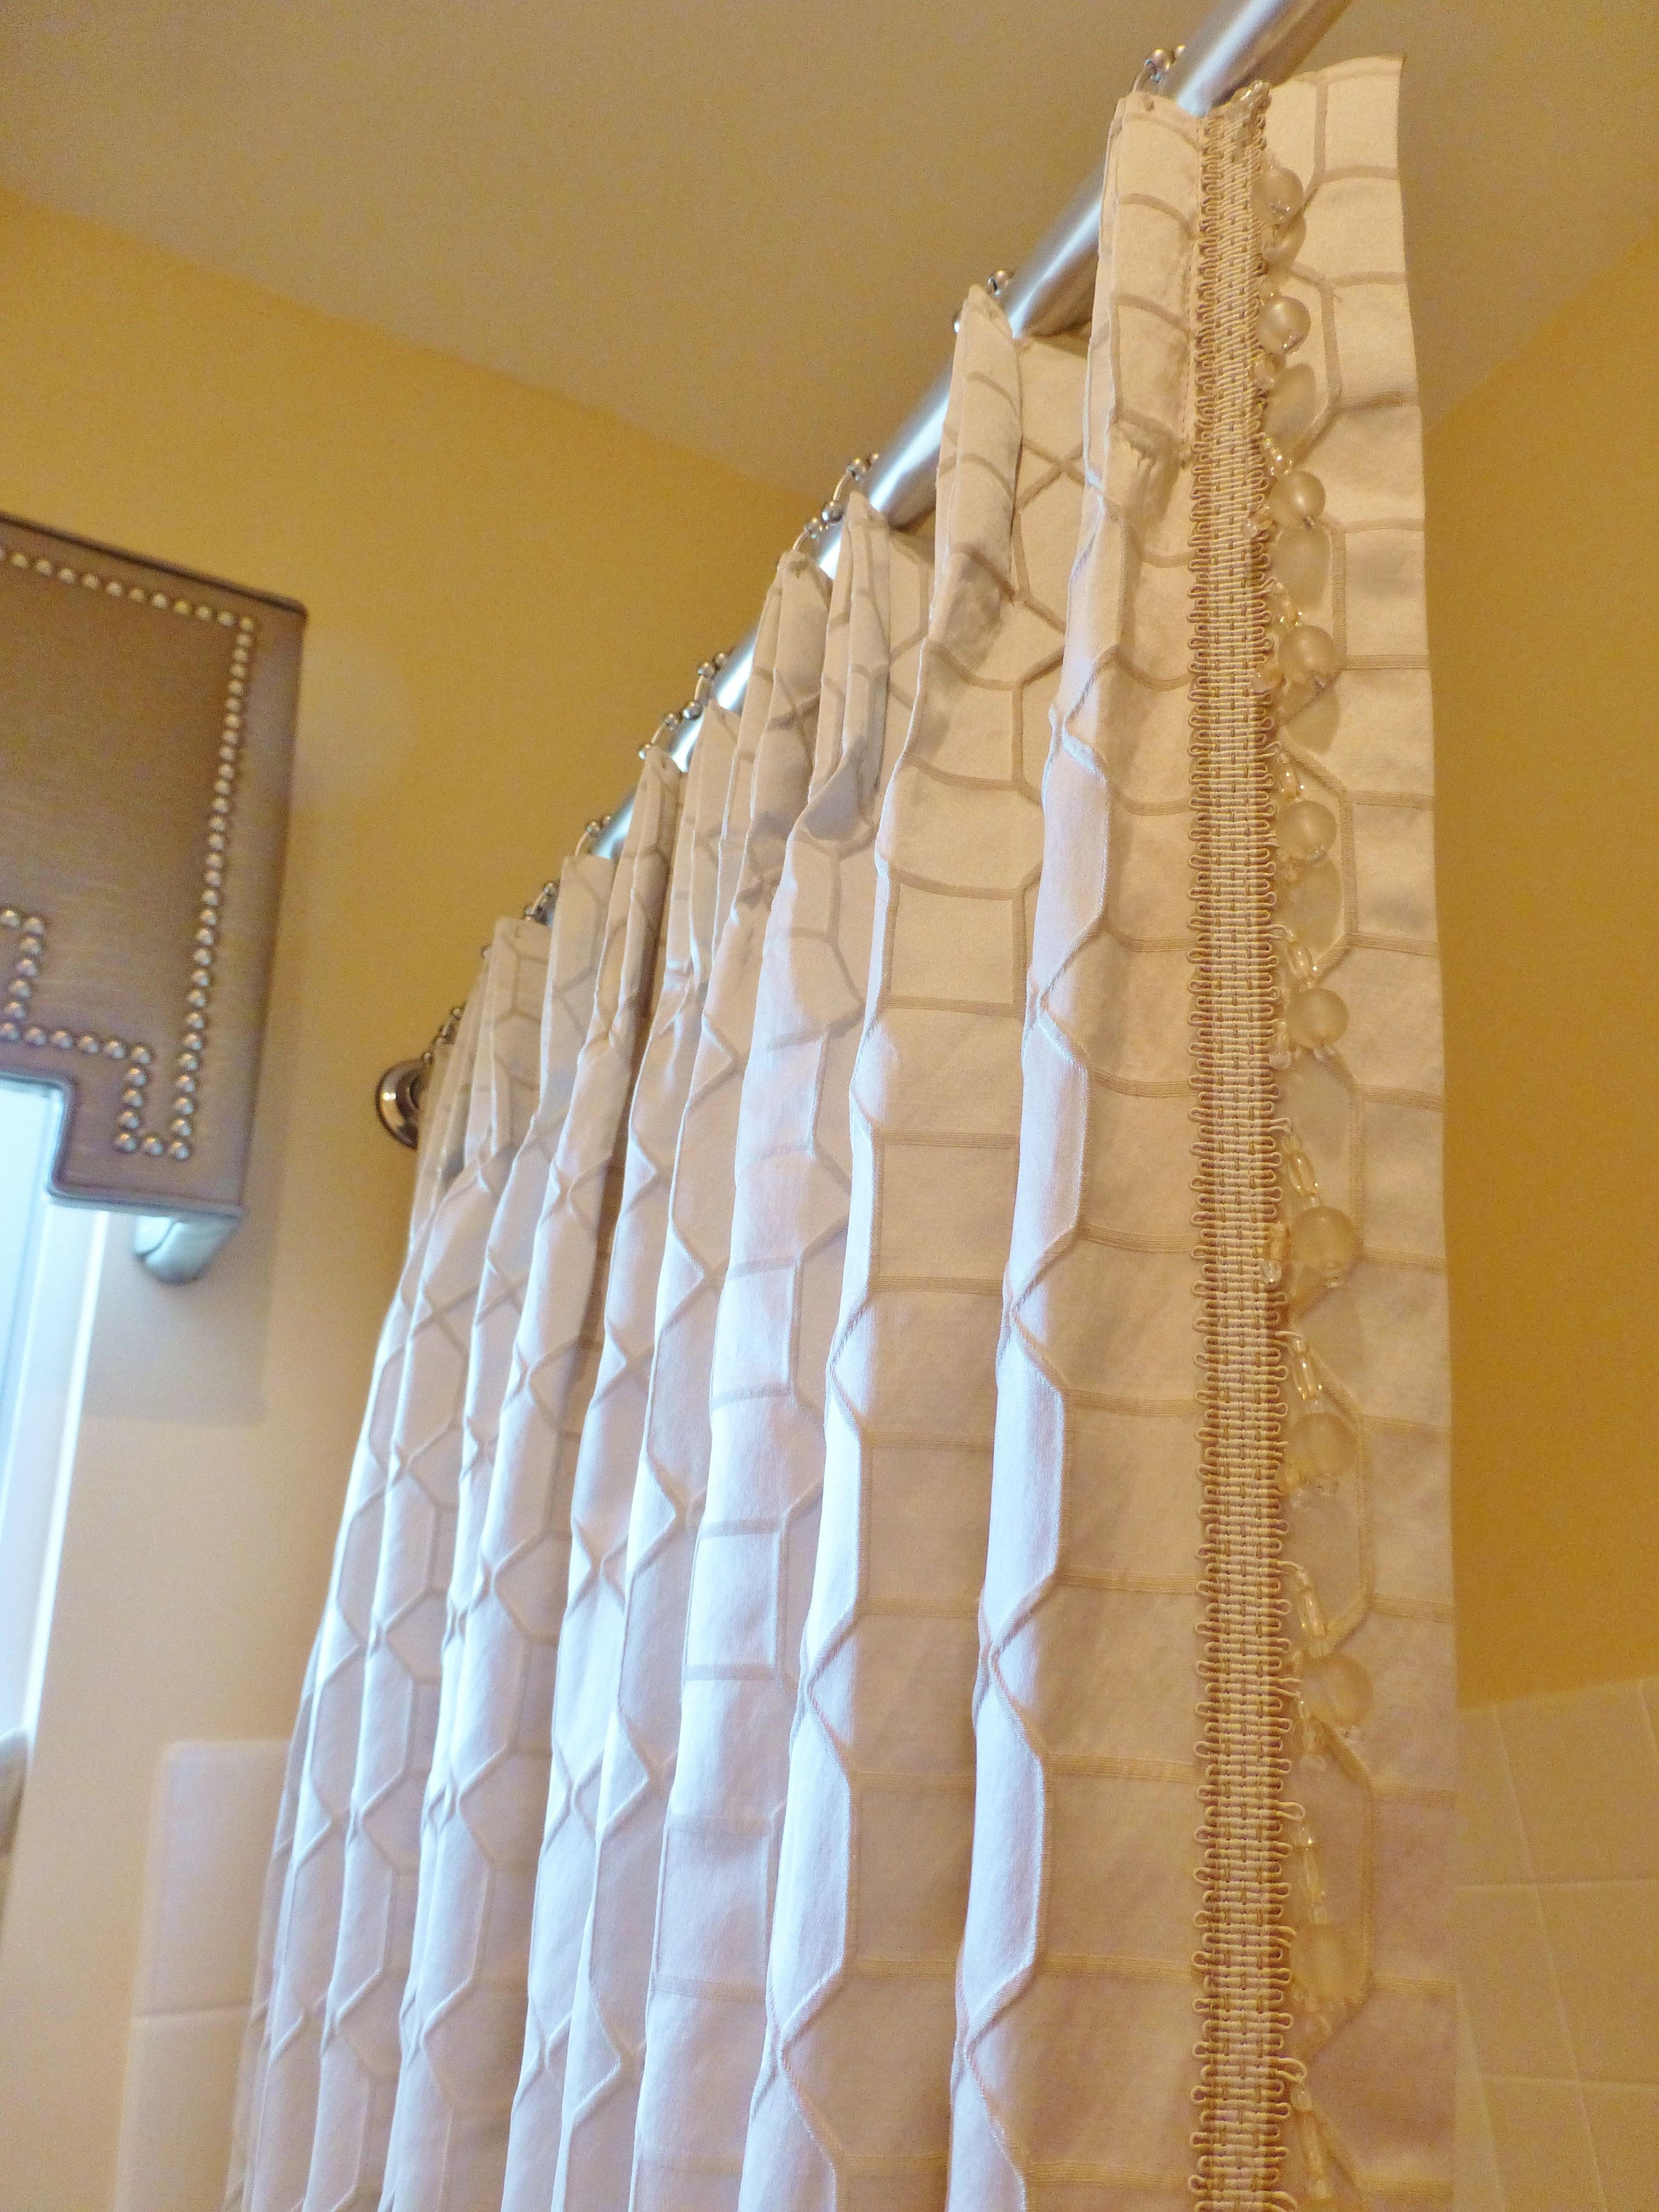 A Detail Of The Luxurious Custom Shower Curtain In This Neutral